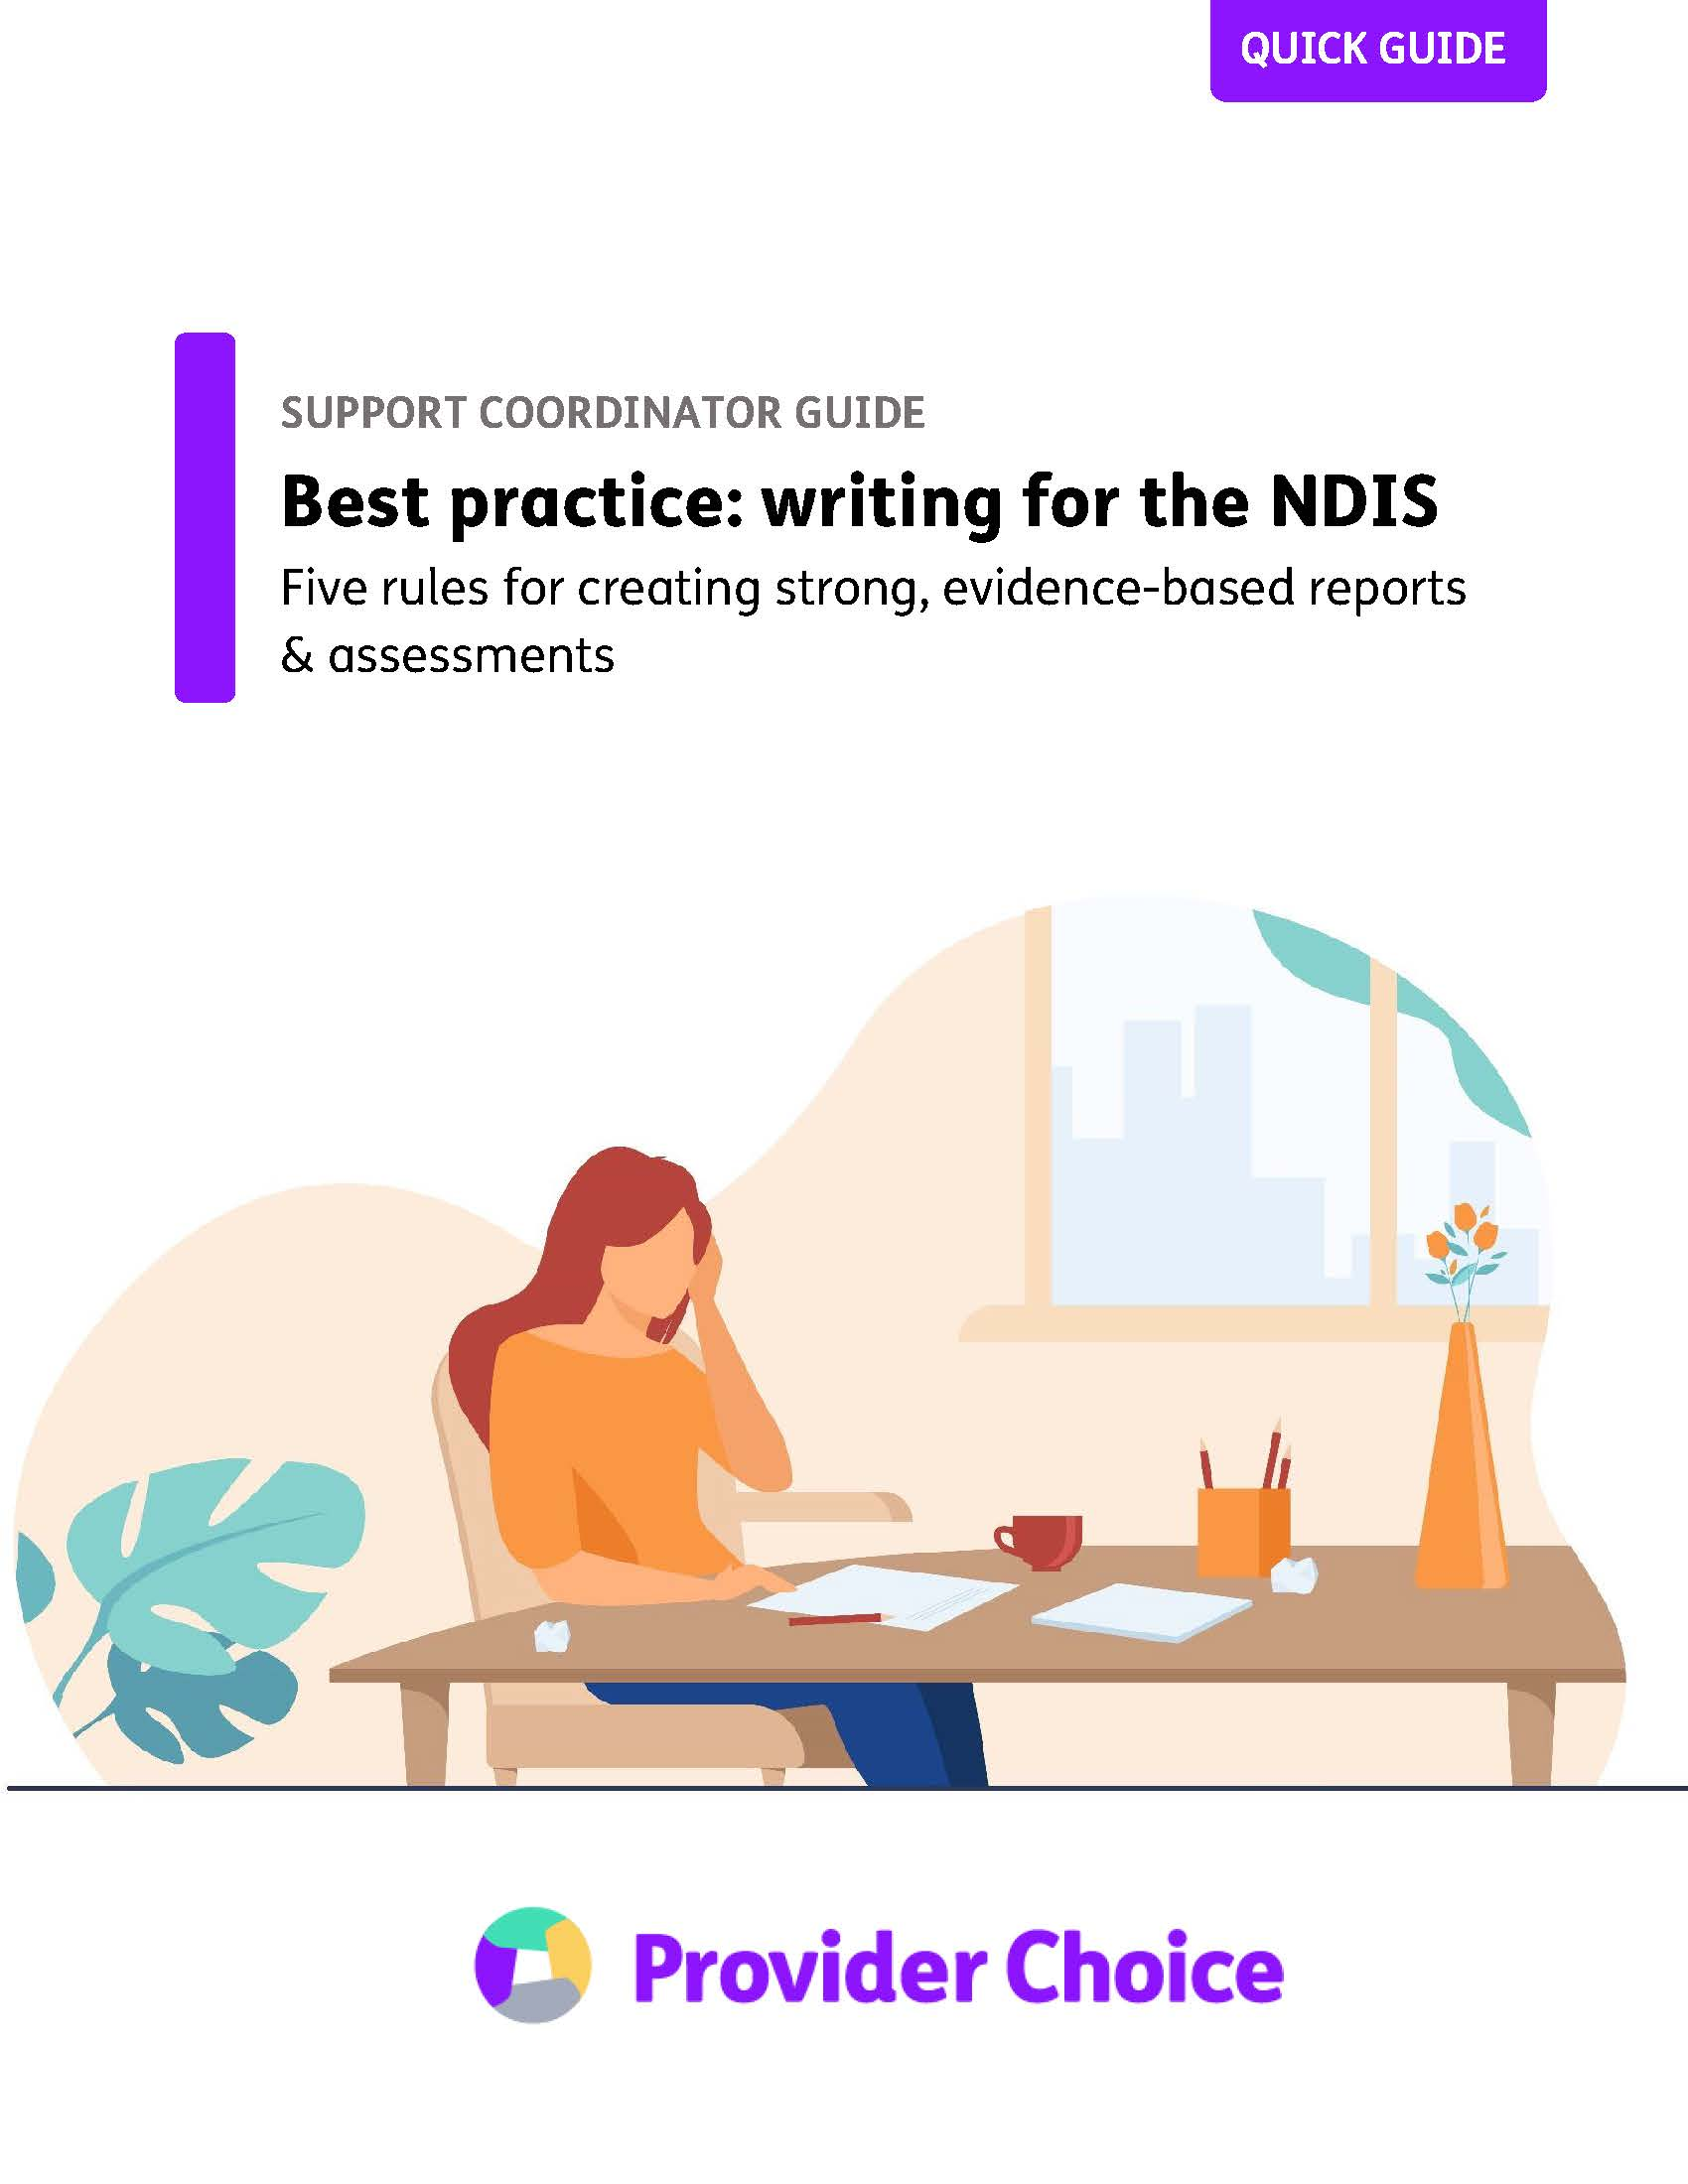 Best practice: 5 rules to help you write strong reports for the NDIS